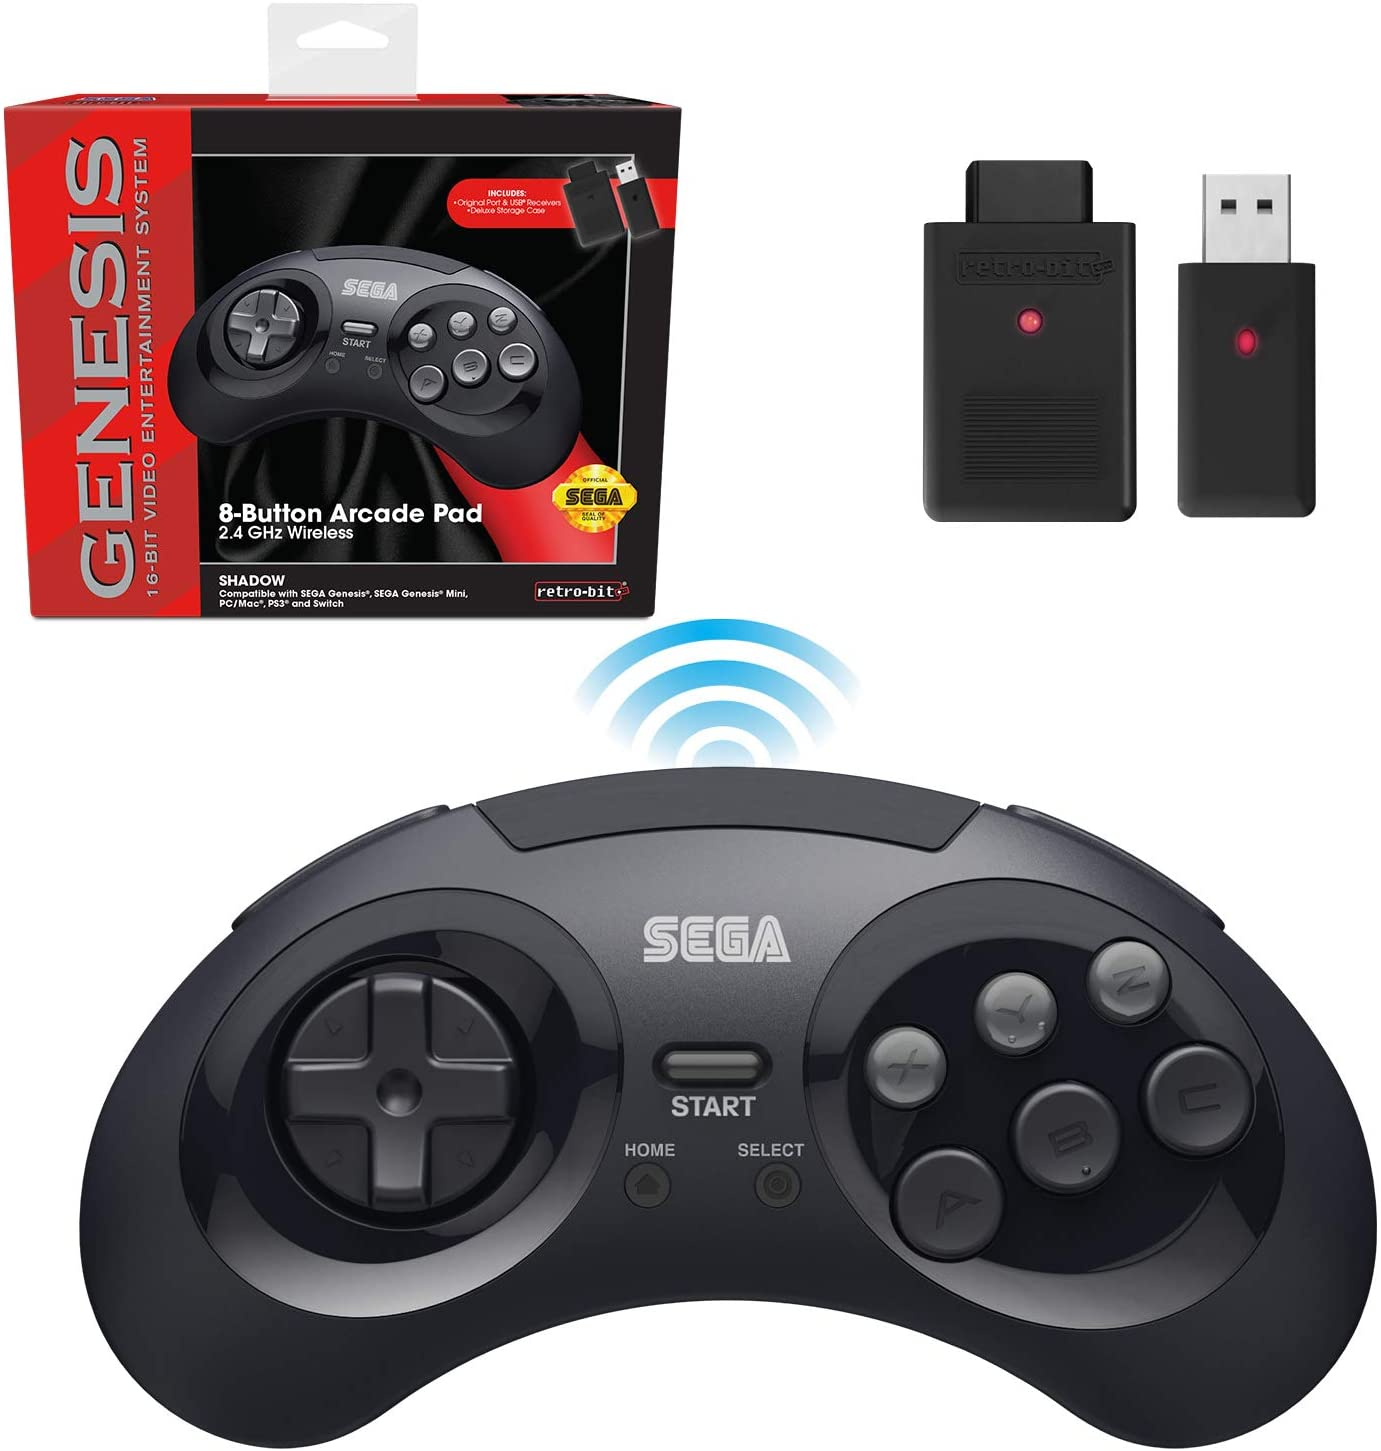 Retro-Bit Sega Genesis 2.4 GHz Wireless Controller 8-Button Arcade Pad for Sega Genesis Original/Mini, Switch, PC, Mac – Includes 2 Receivers & Storage Case - Black